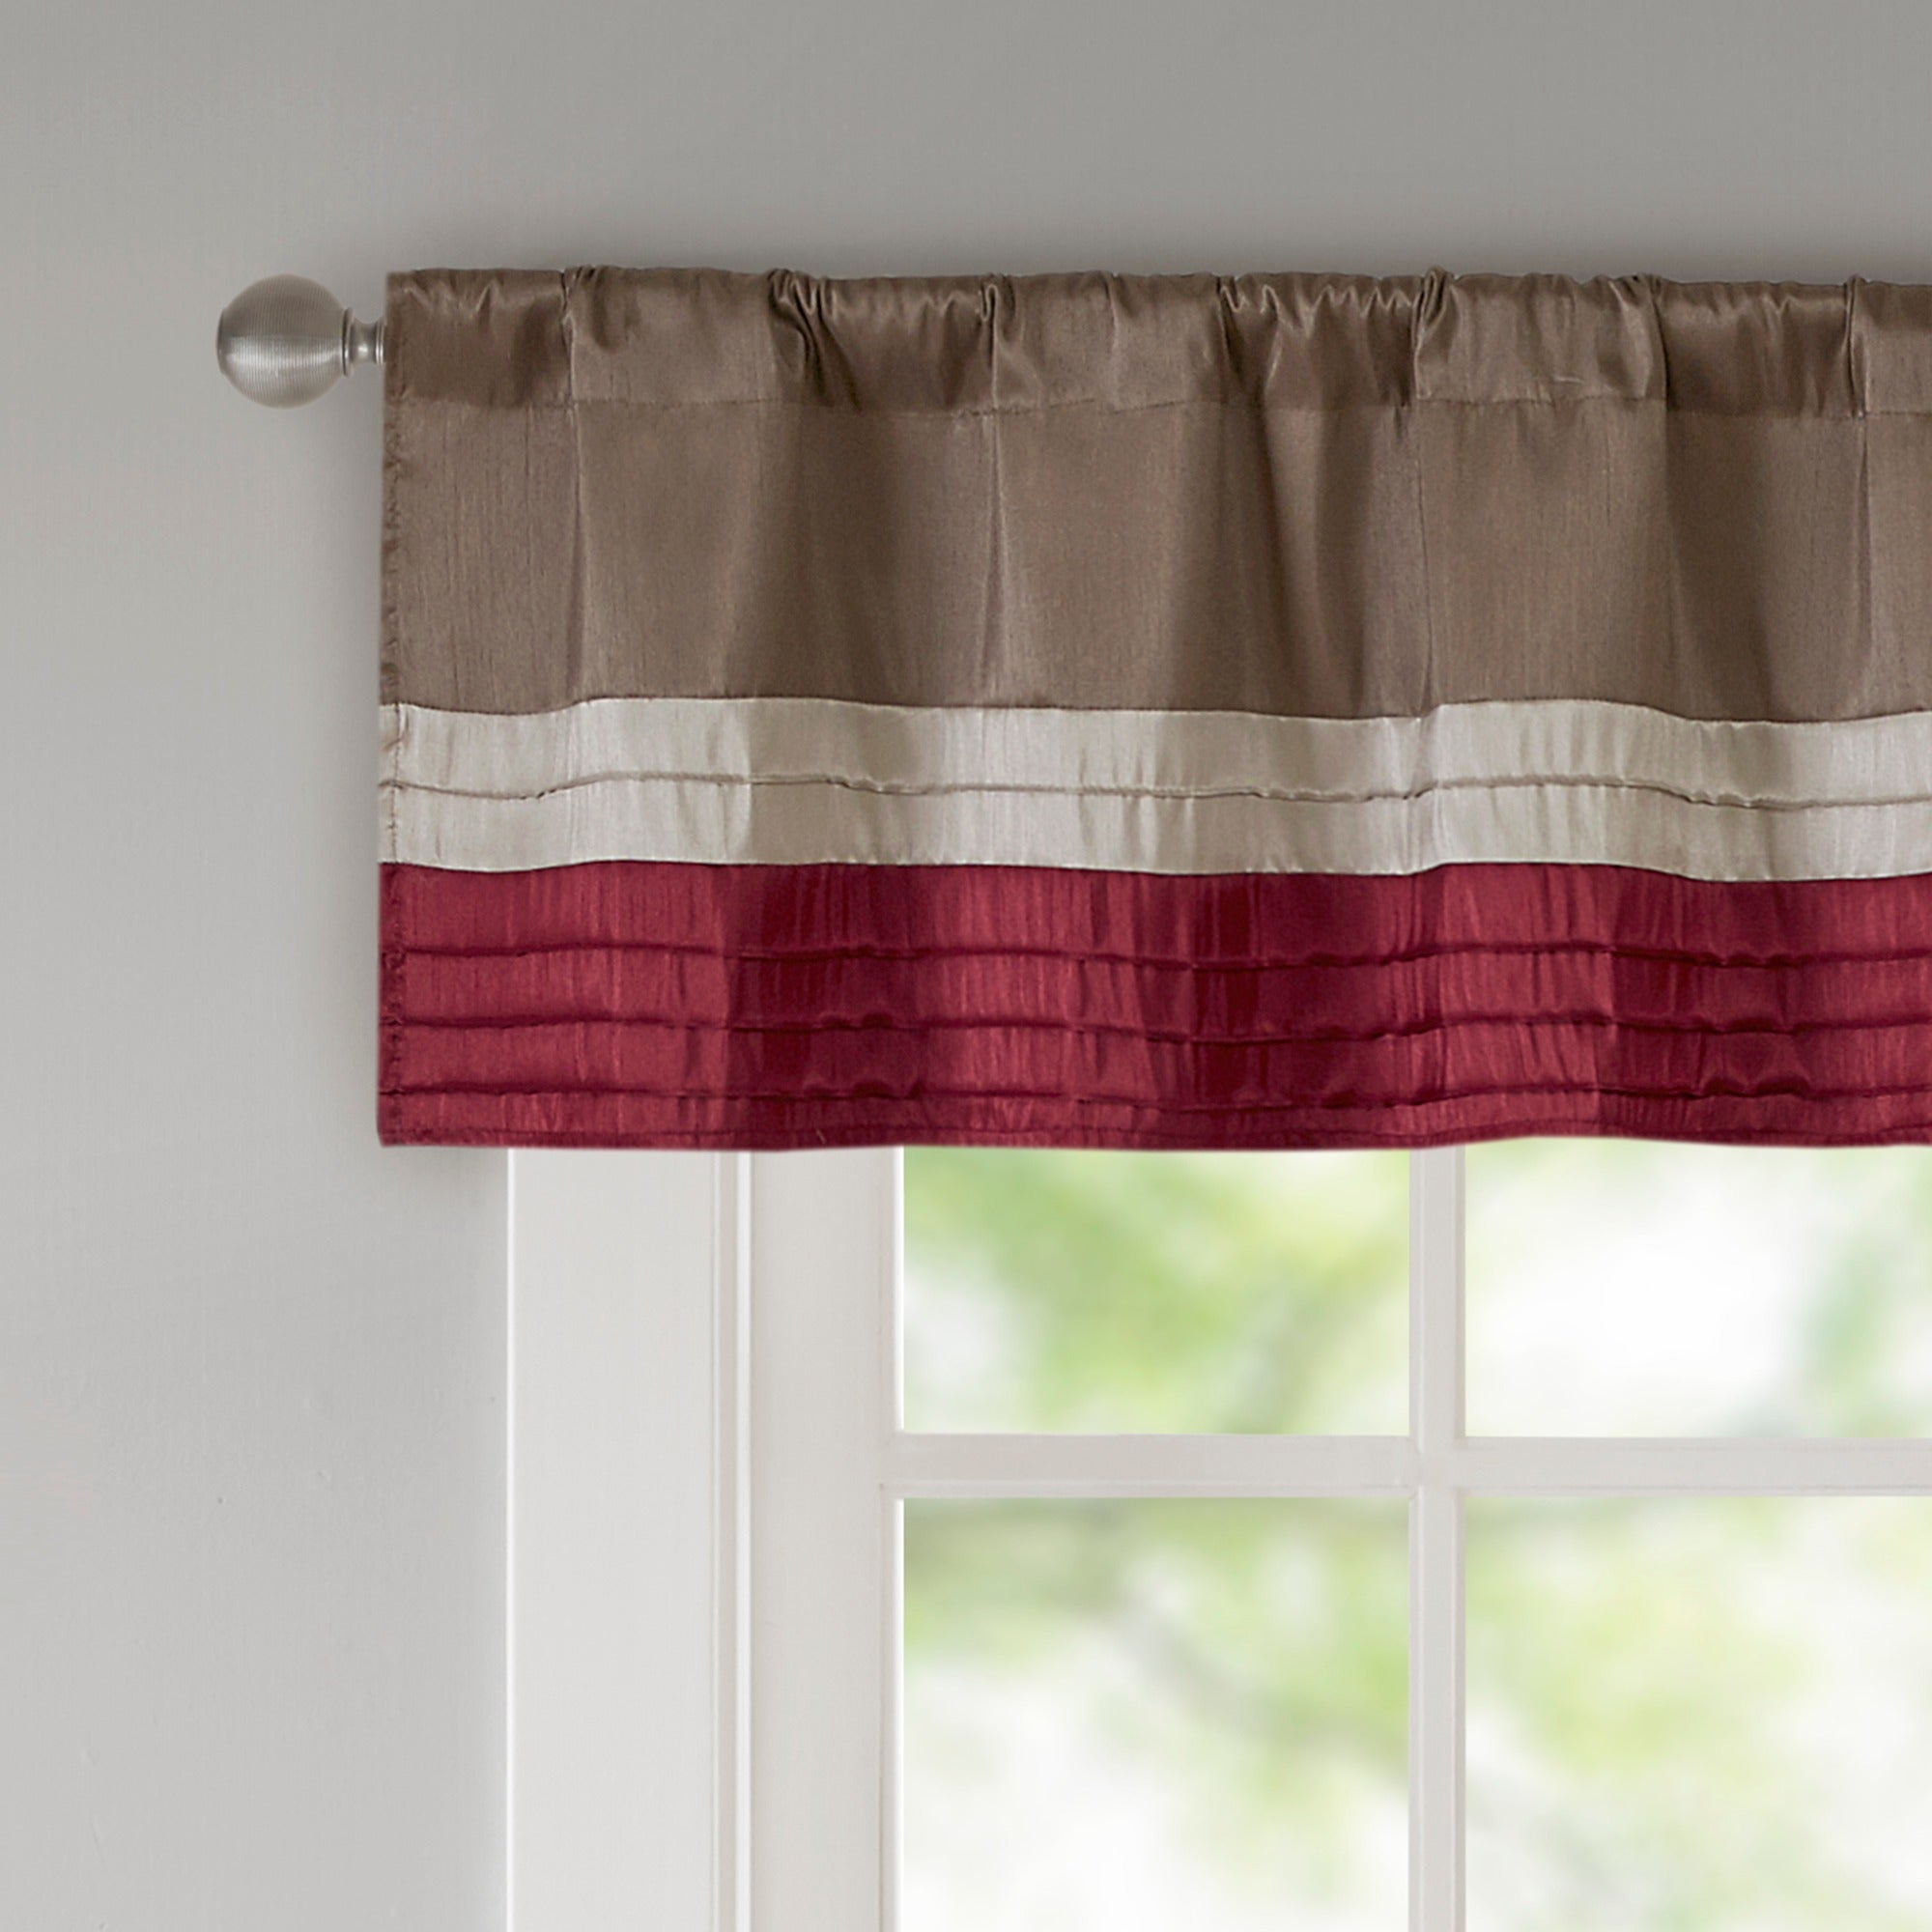 faux juline trim garden orders product on waterfall overstock shipping valances valance park home tassel over madison solid embellished silk lined free